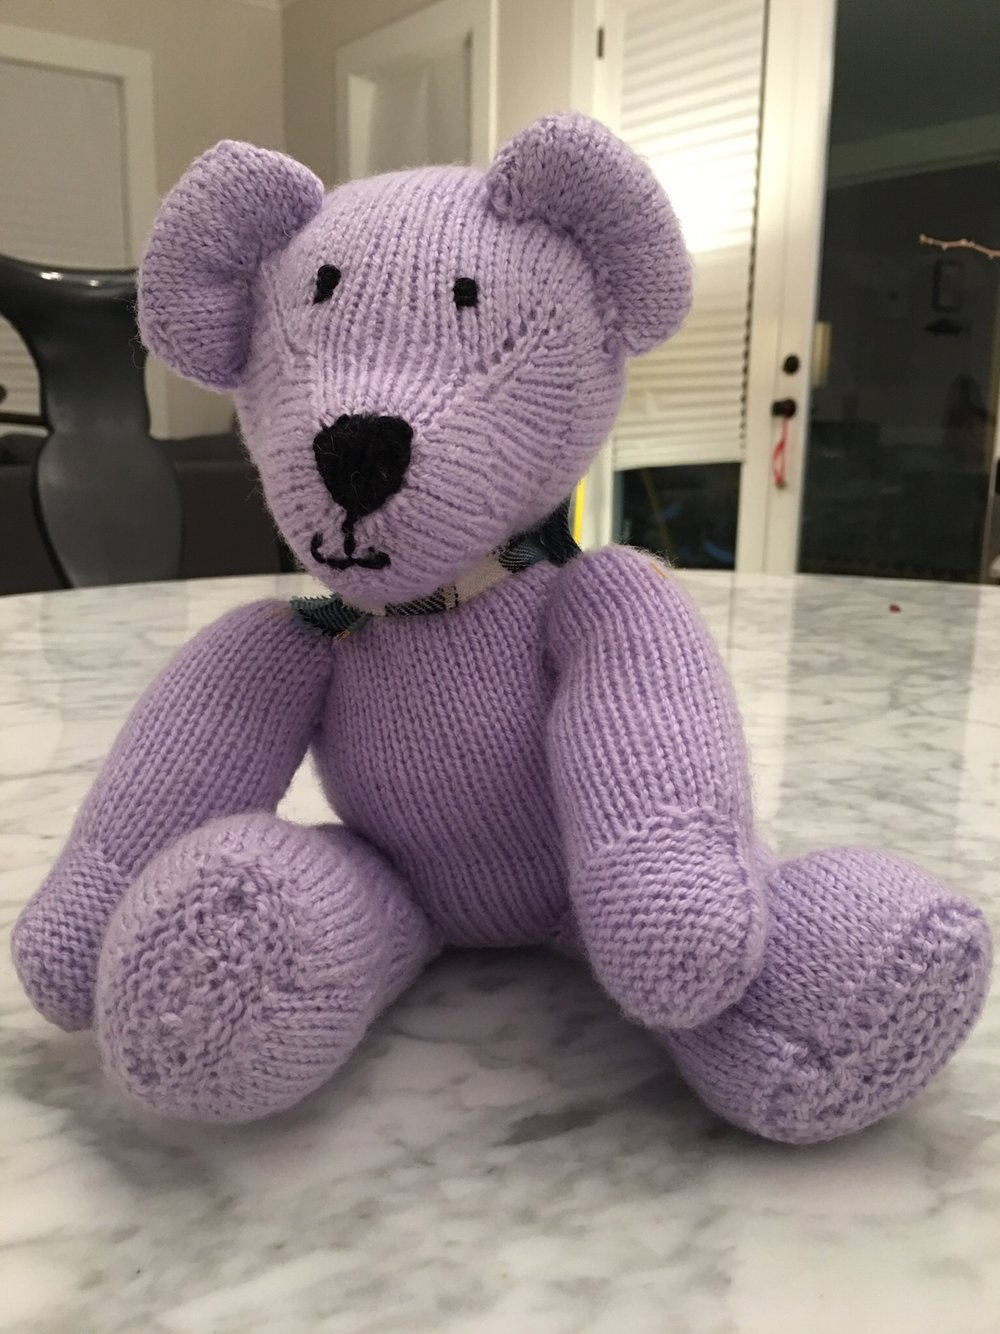 RAFFLE: Knitted TEDDY from Scotland